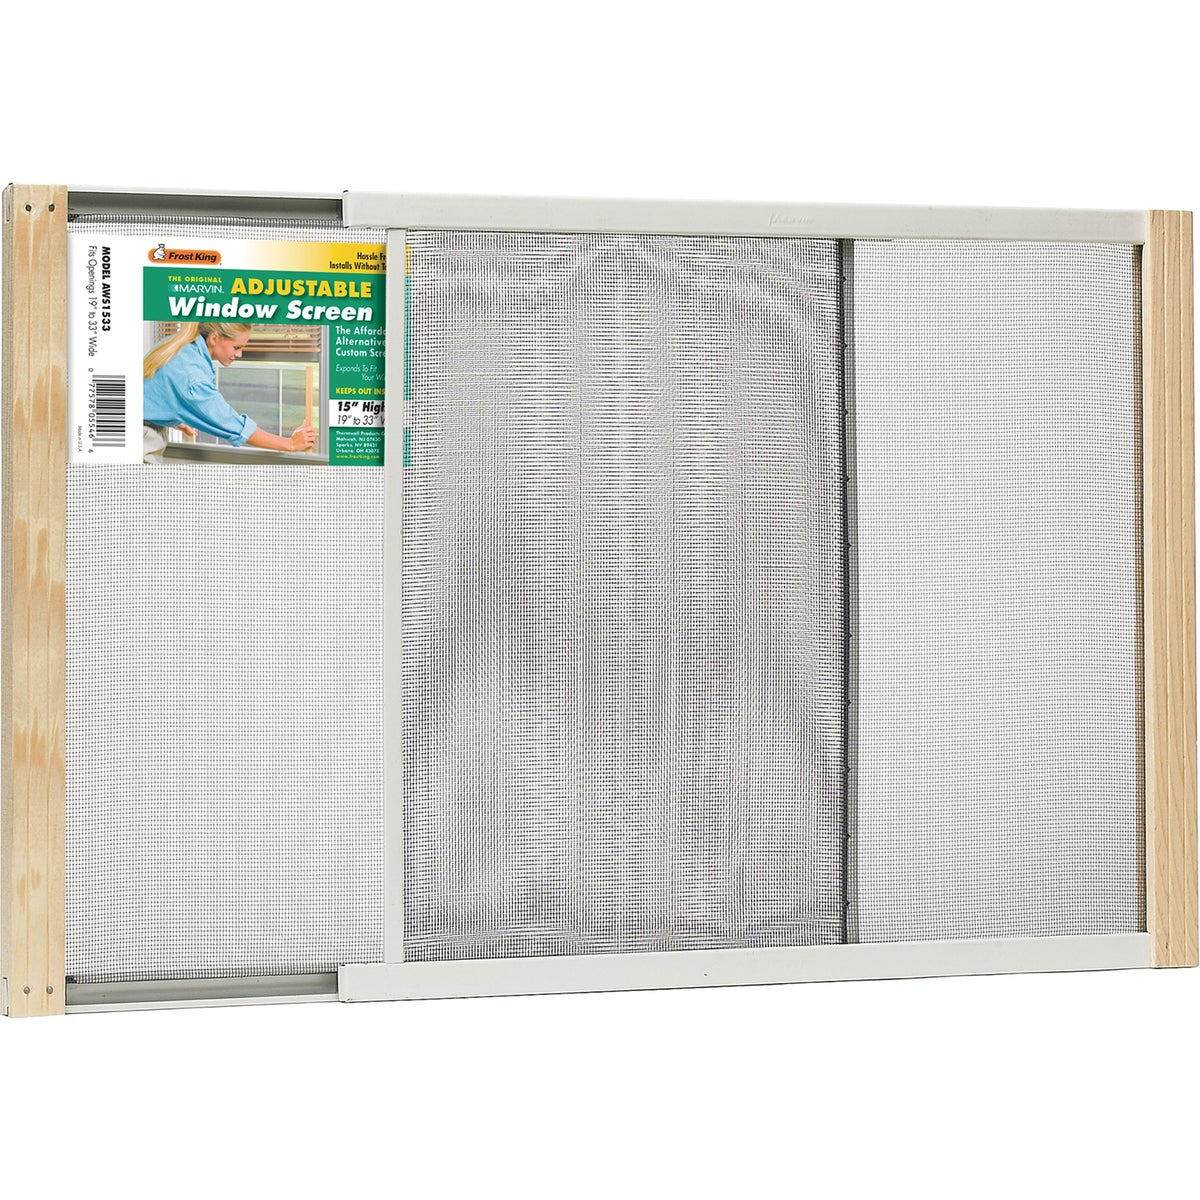 ADJUSTABLE WINDOW SCREEN - AWS1533 by Thermwell Prods Co